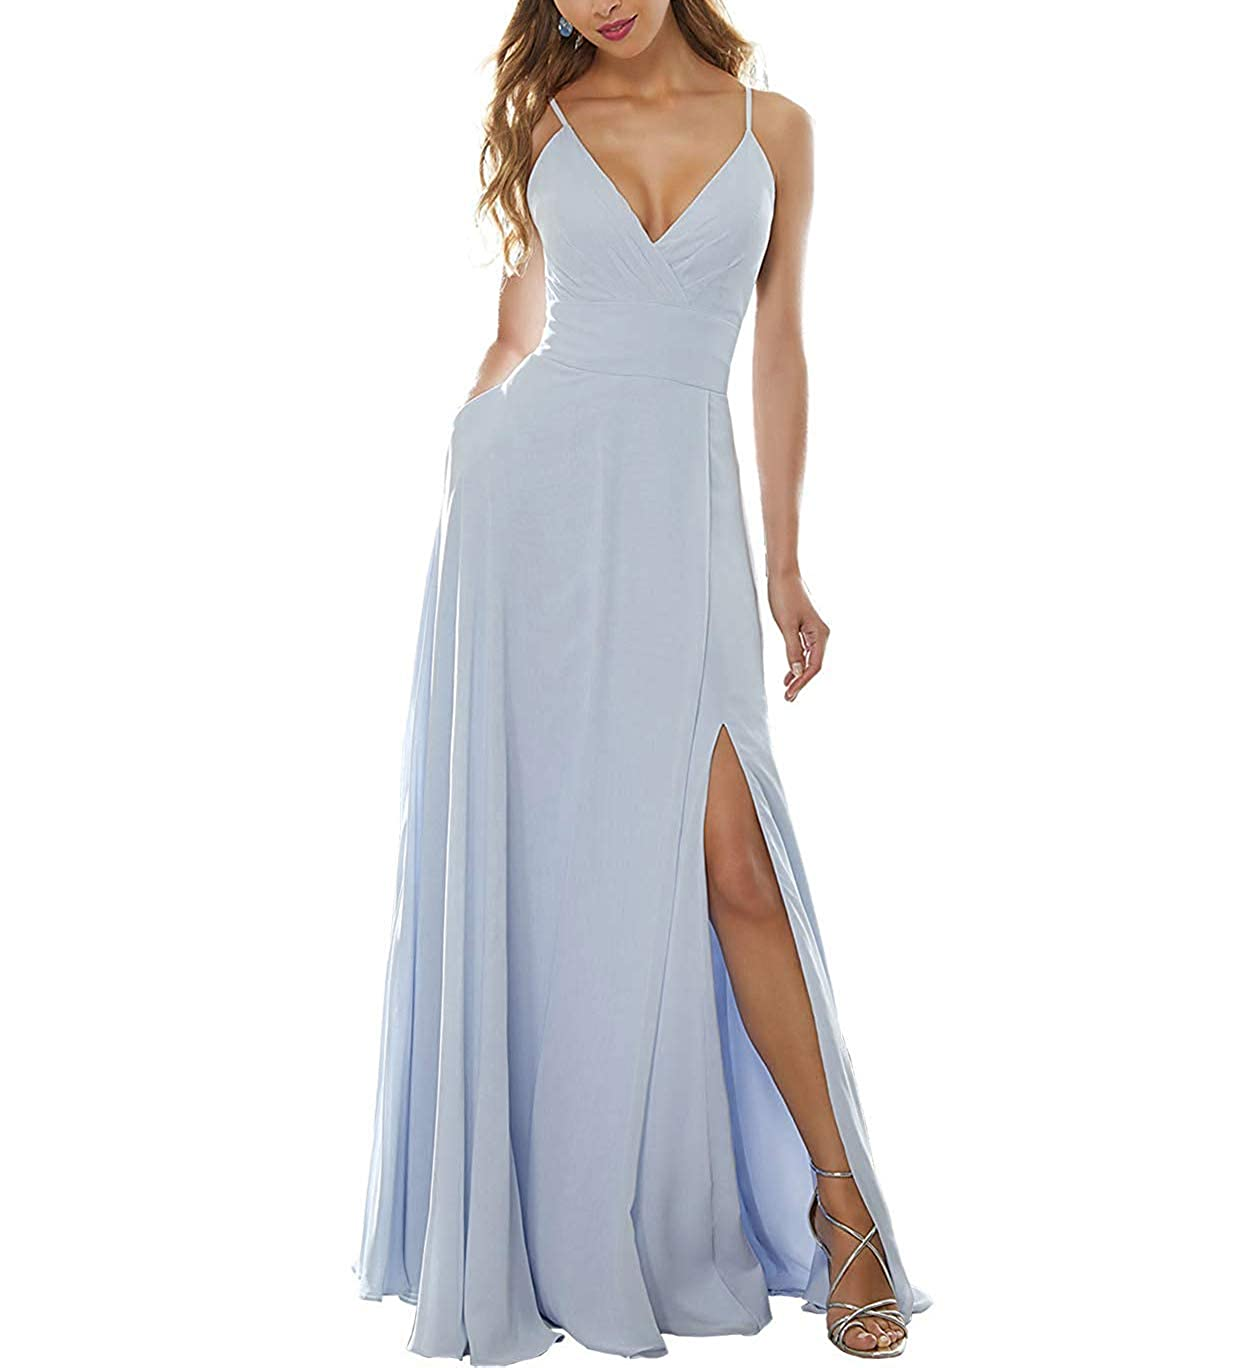 White Stylefun Women's Side Split Bridesmaid Gowns VNeckline Spaghetti Straps Long Prom Party Dresses KN004